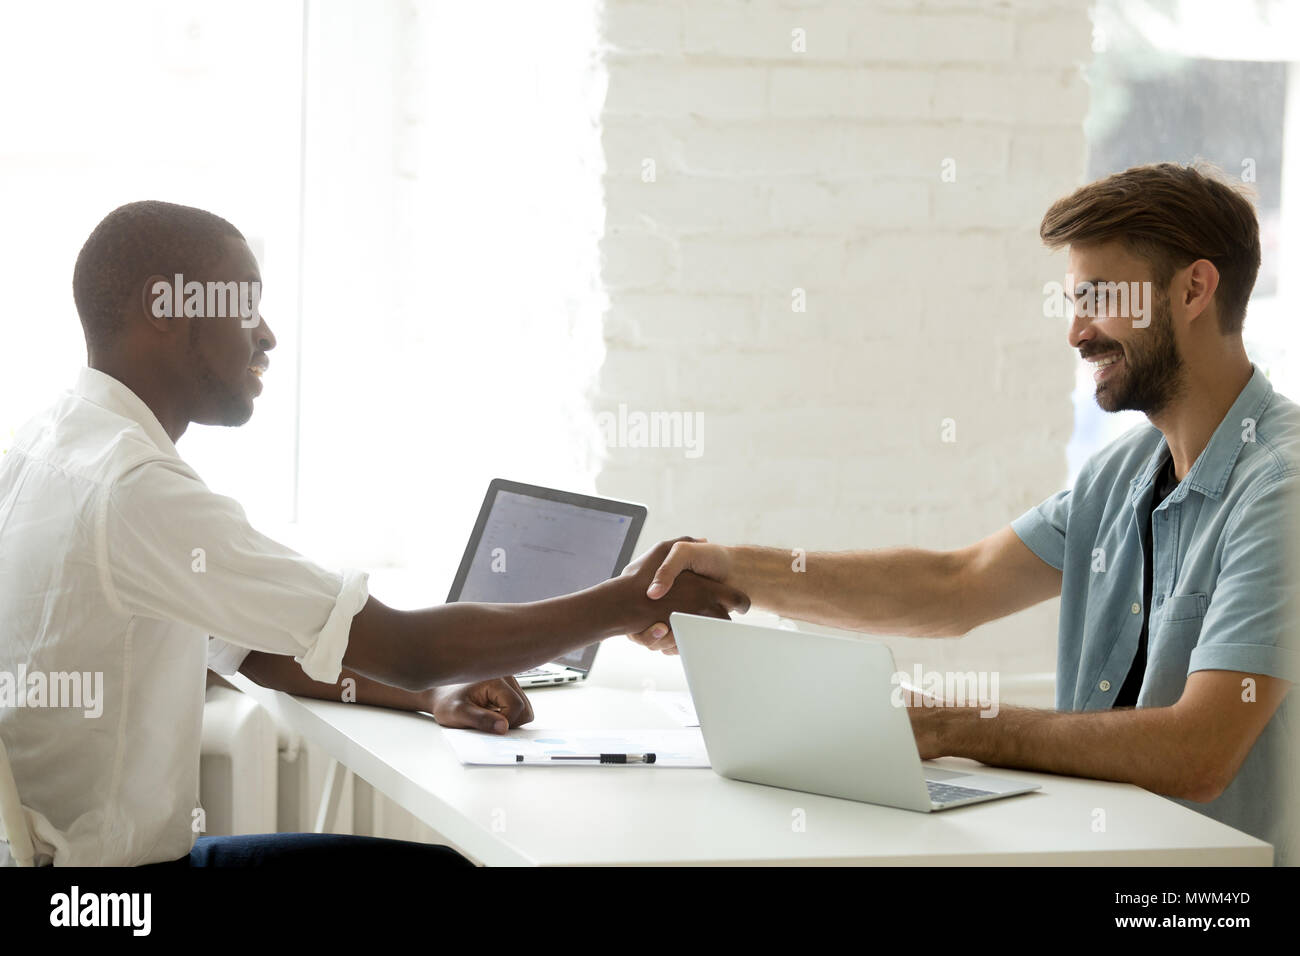 Business partners shaking hands greeting each other Stock Photo